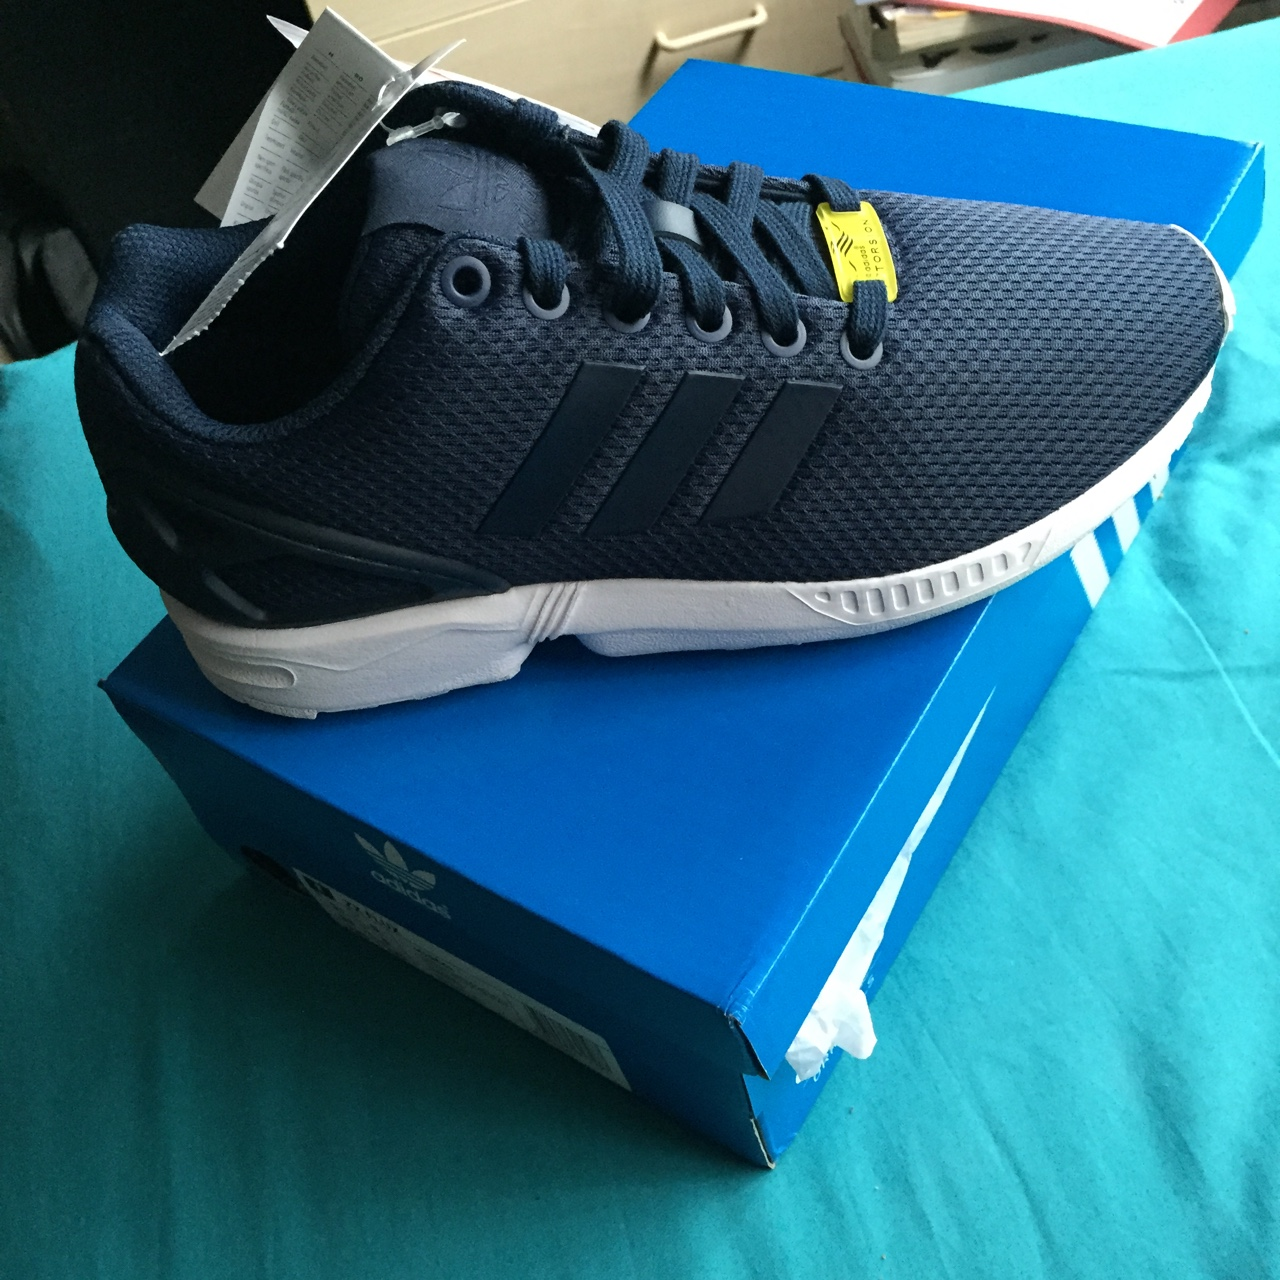 newest 65e50 80a15 Navy Blue and White Adidas ZX Flux size 5 #adidas... - Depop